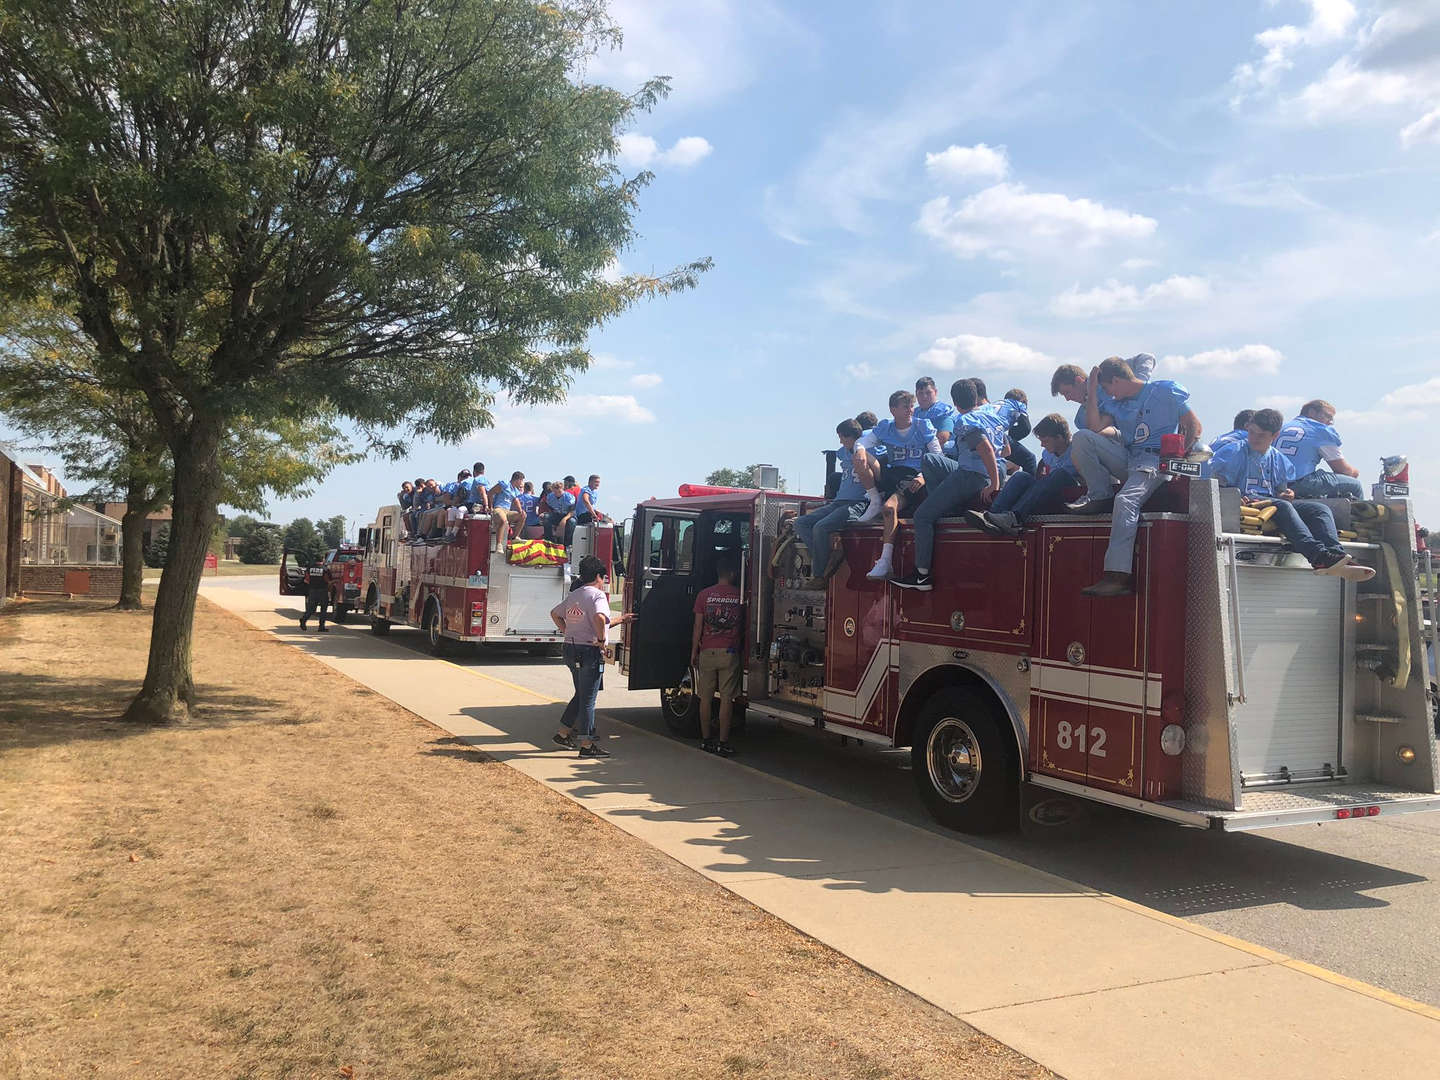 Football team on firetruck during homecoming parade.